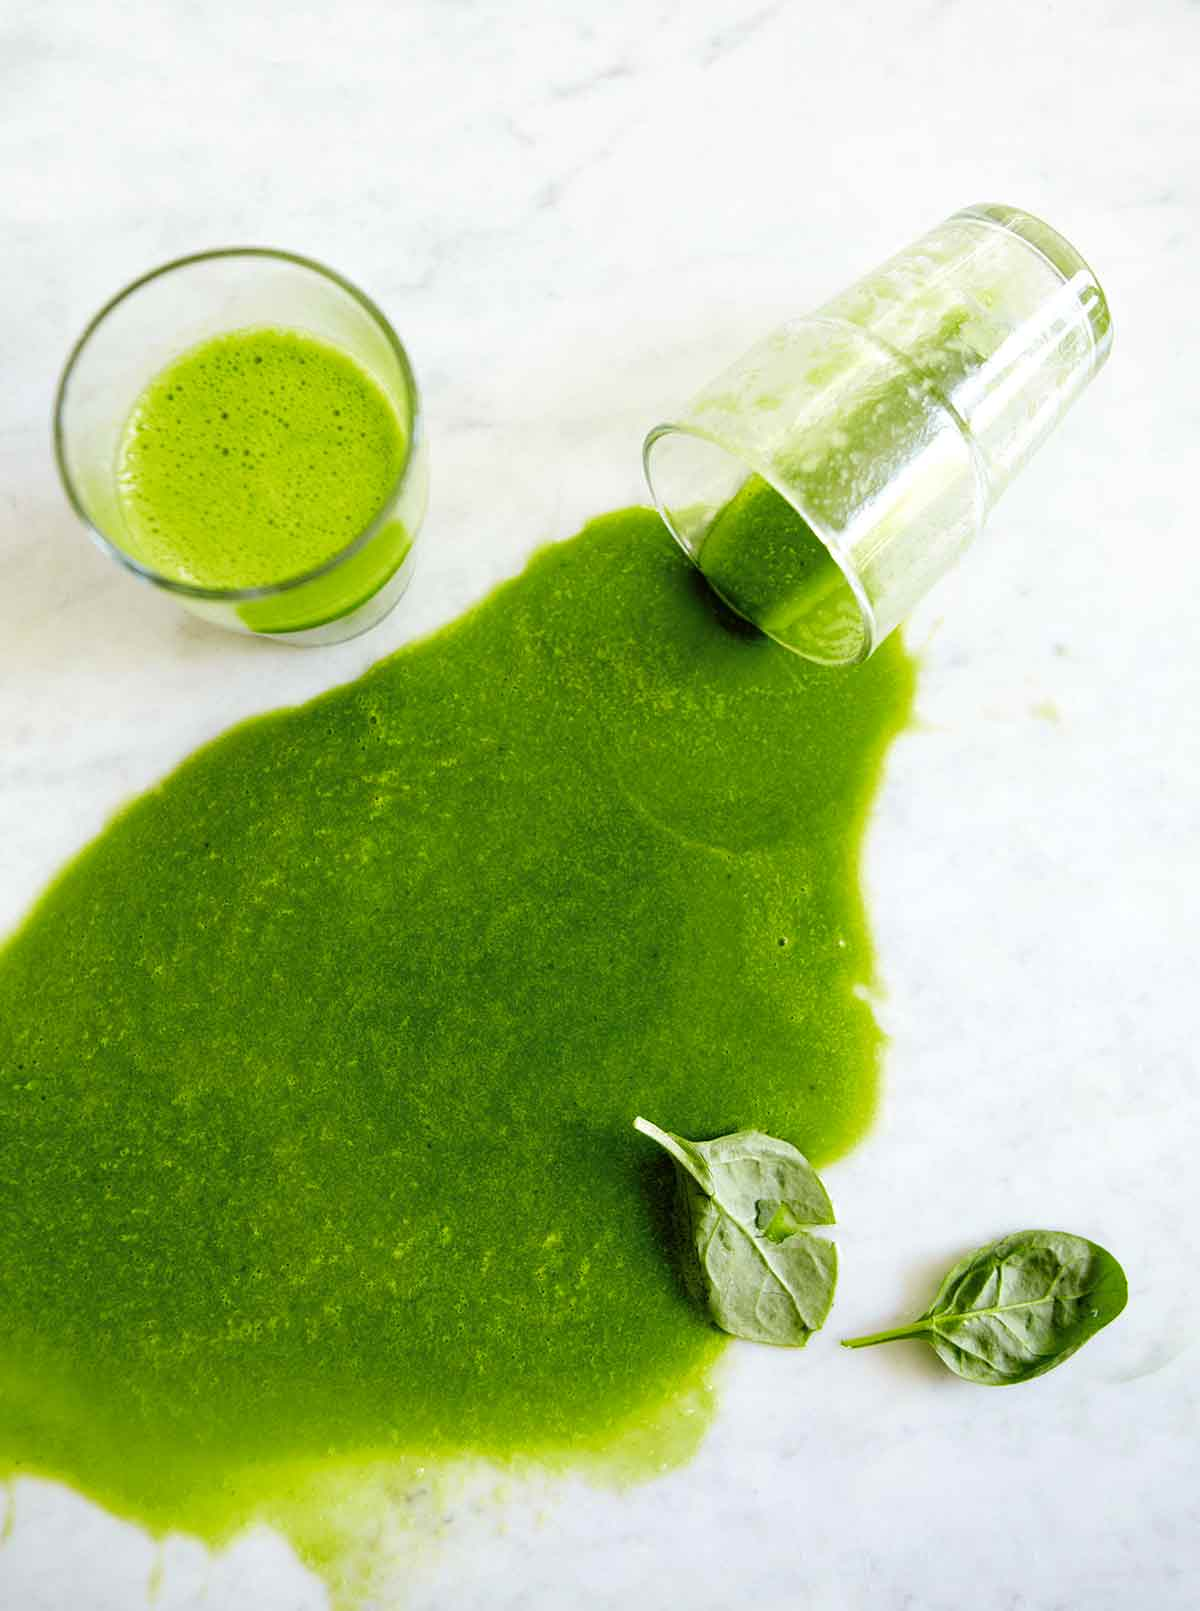 A glass of green smooth and a second glass that is on its side with green smoothie poured out.